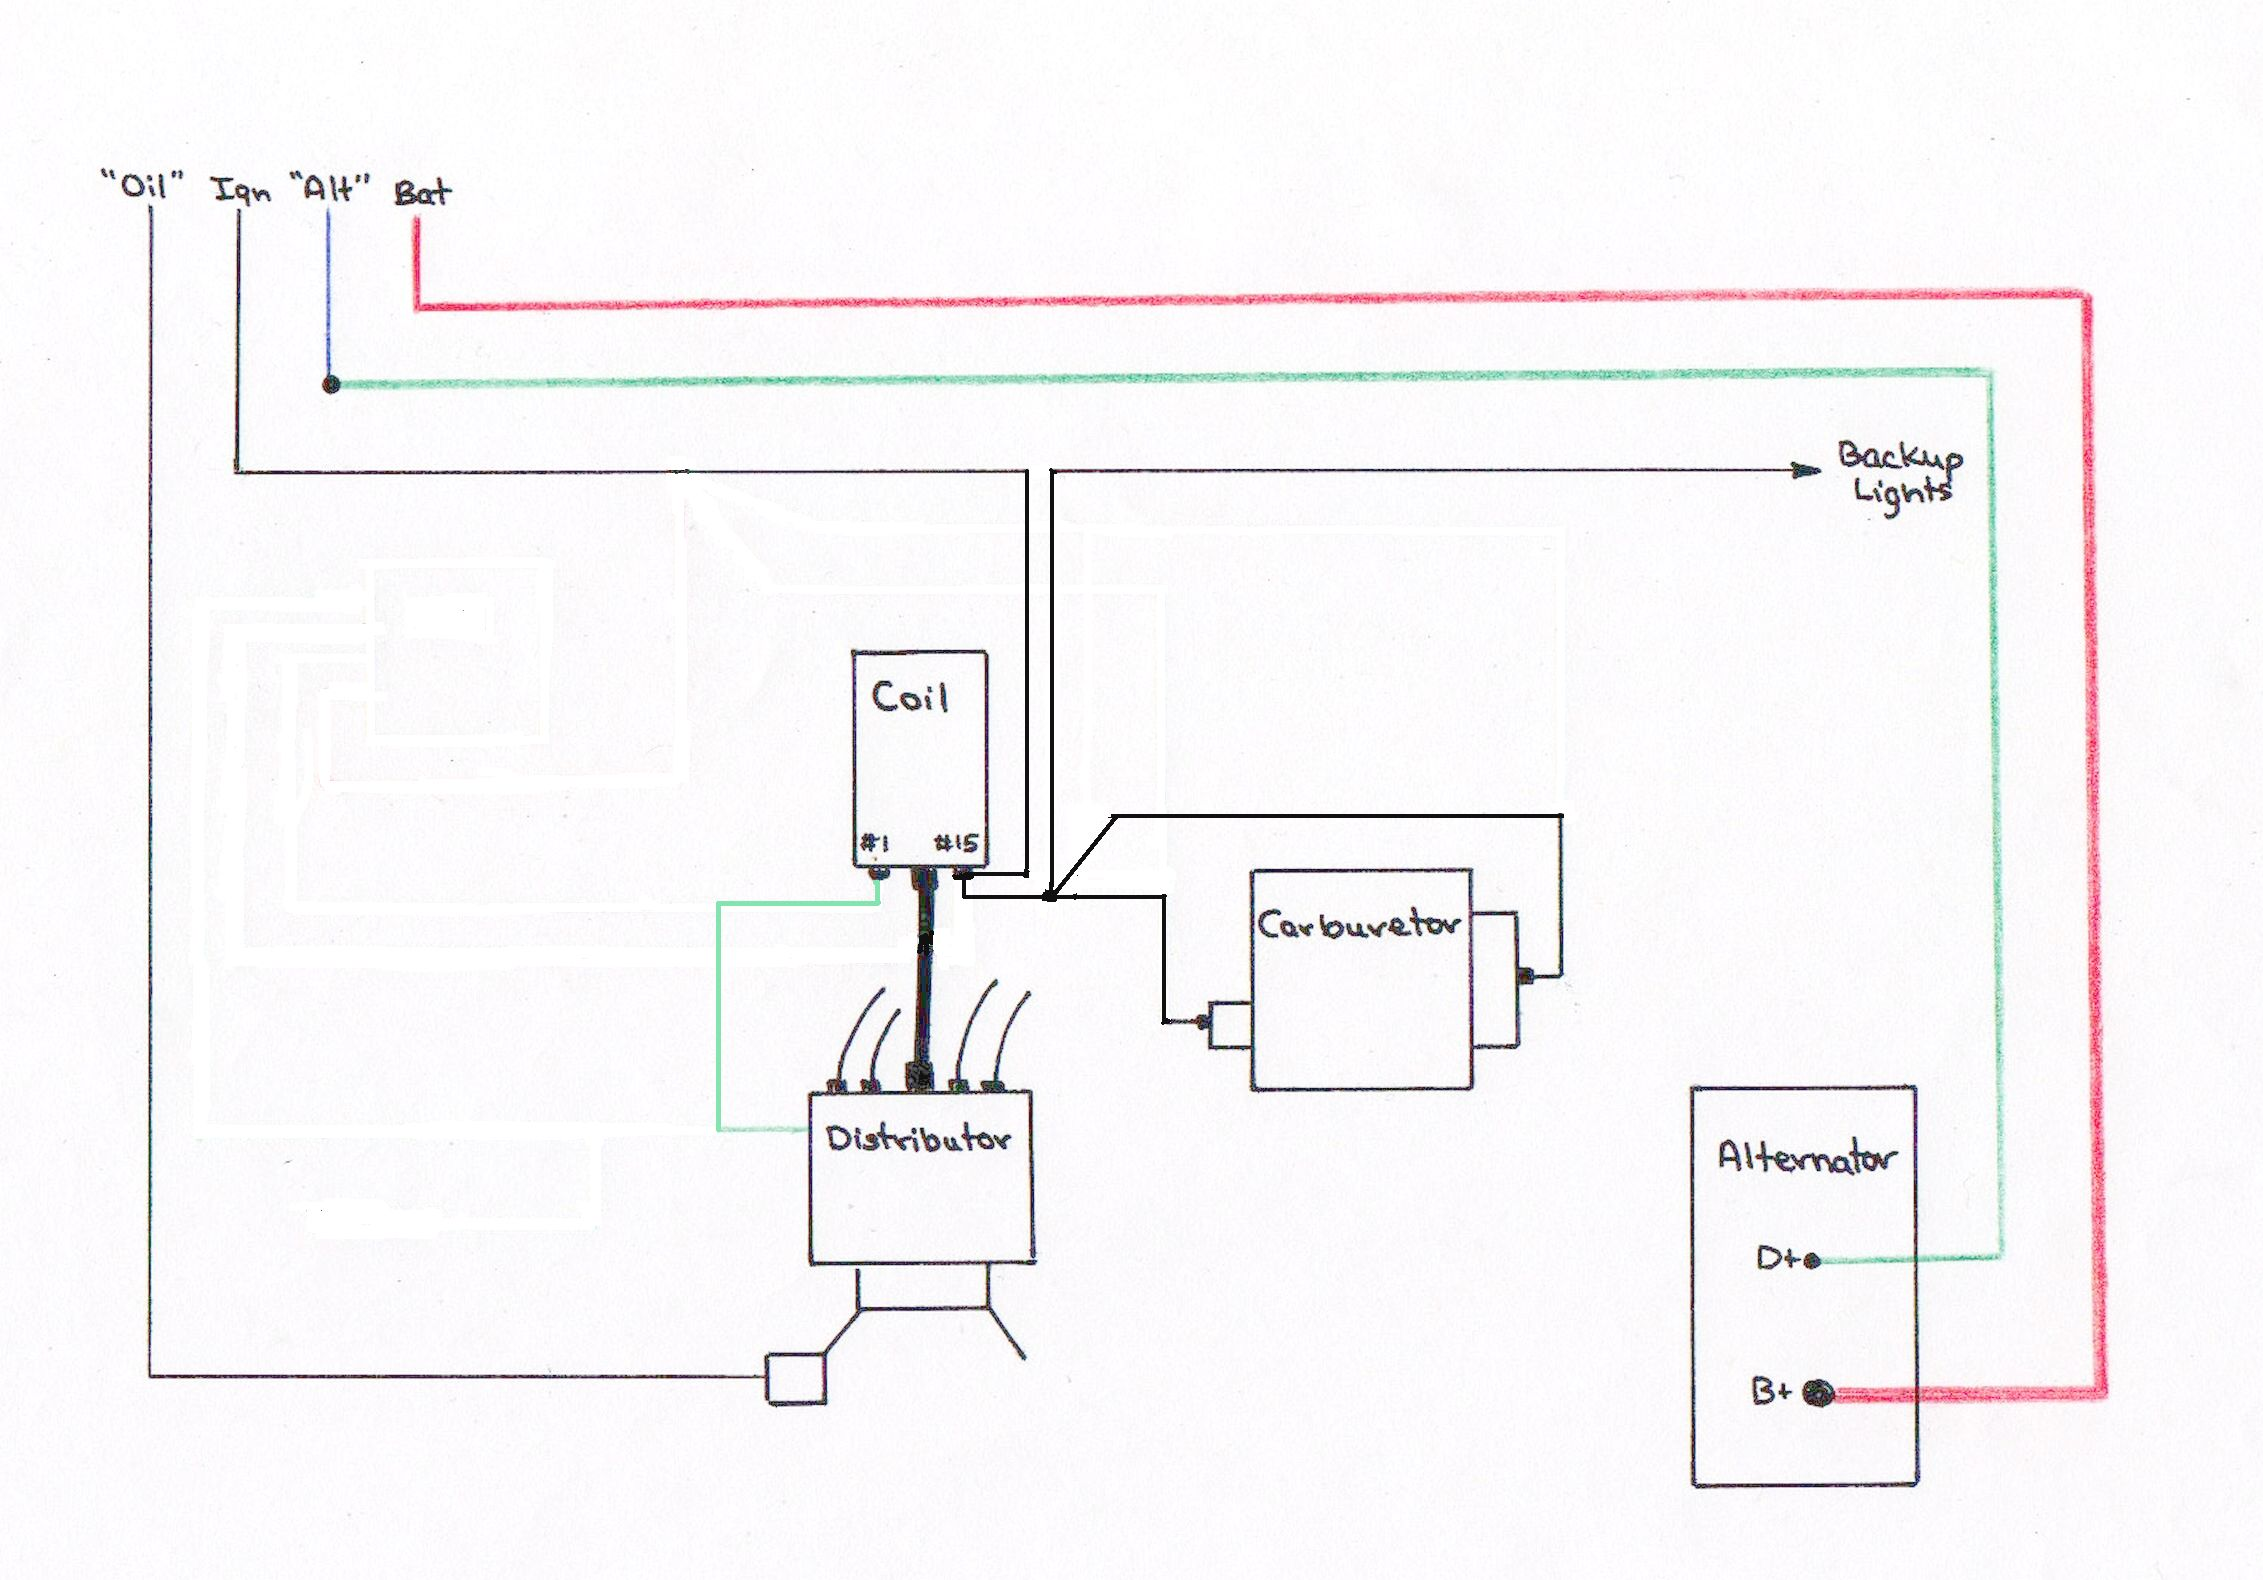 handdrawn_schematic alternator wiring vw ignition switch wiring diagram at aneh.co